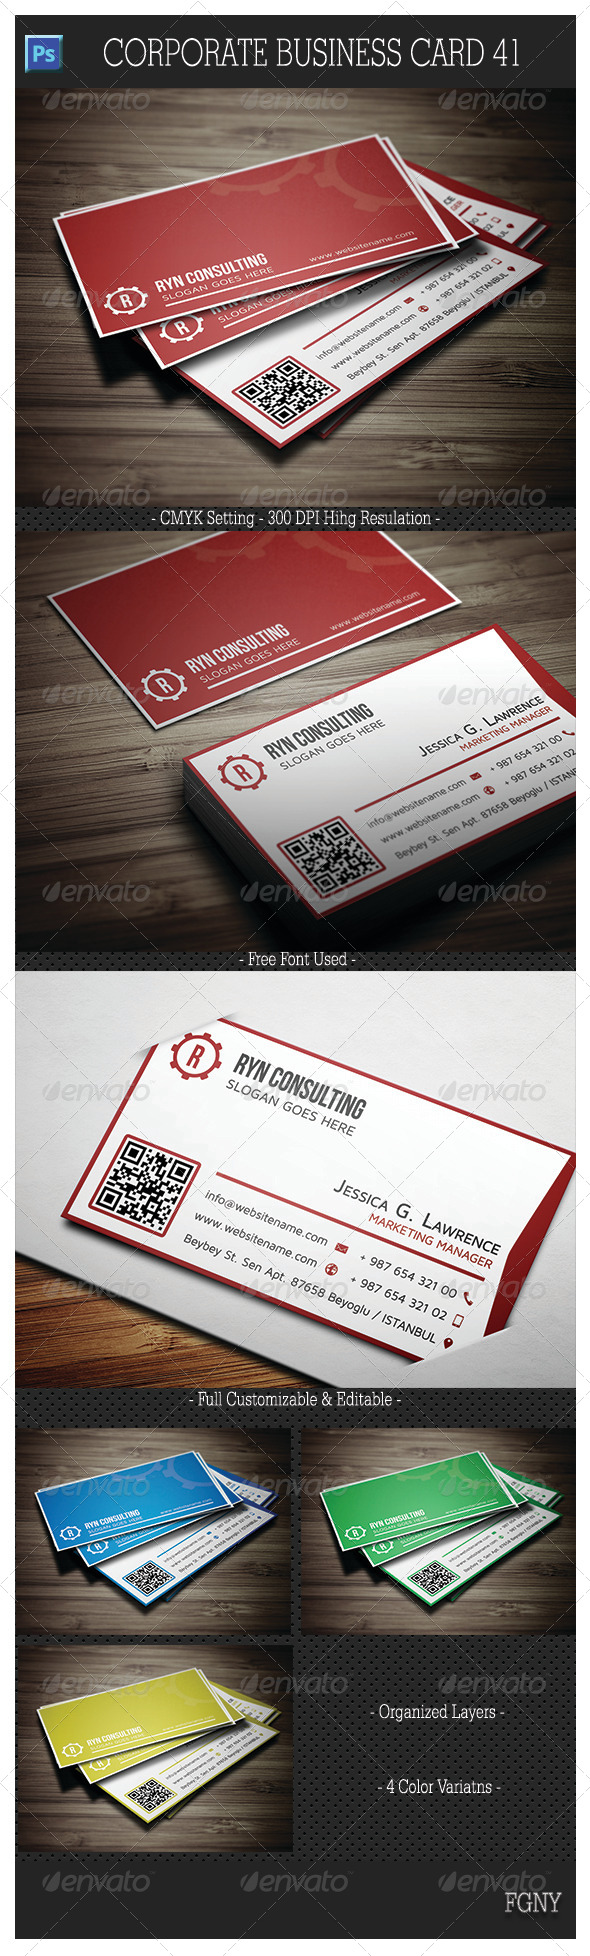 Corporate Business Card 41